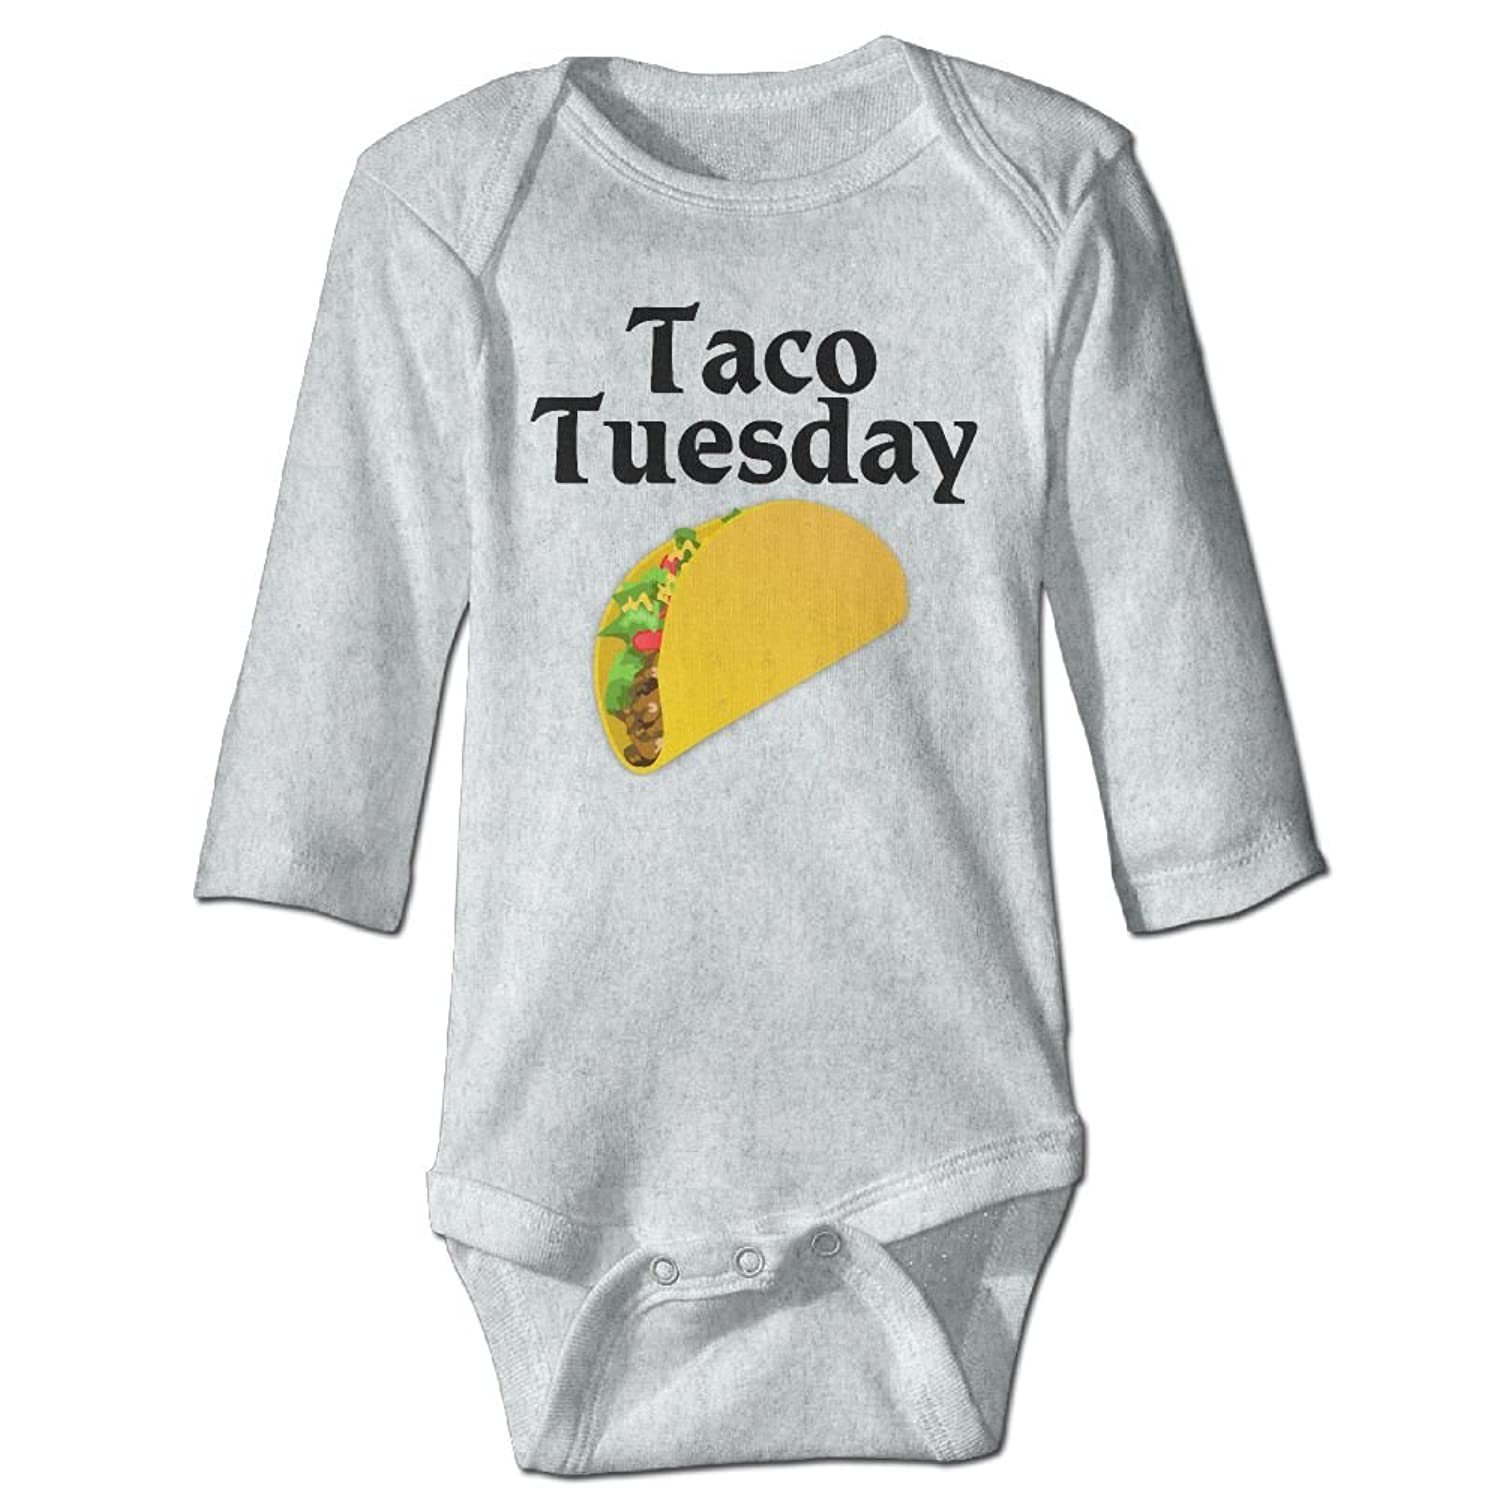 Amazon.com: Sicily54874 Taco Tuesday Design Climbing Suit Baby Long Sleeve For Toddler: Clothing